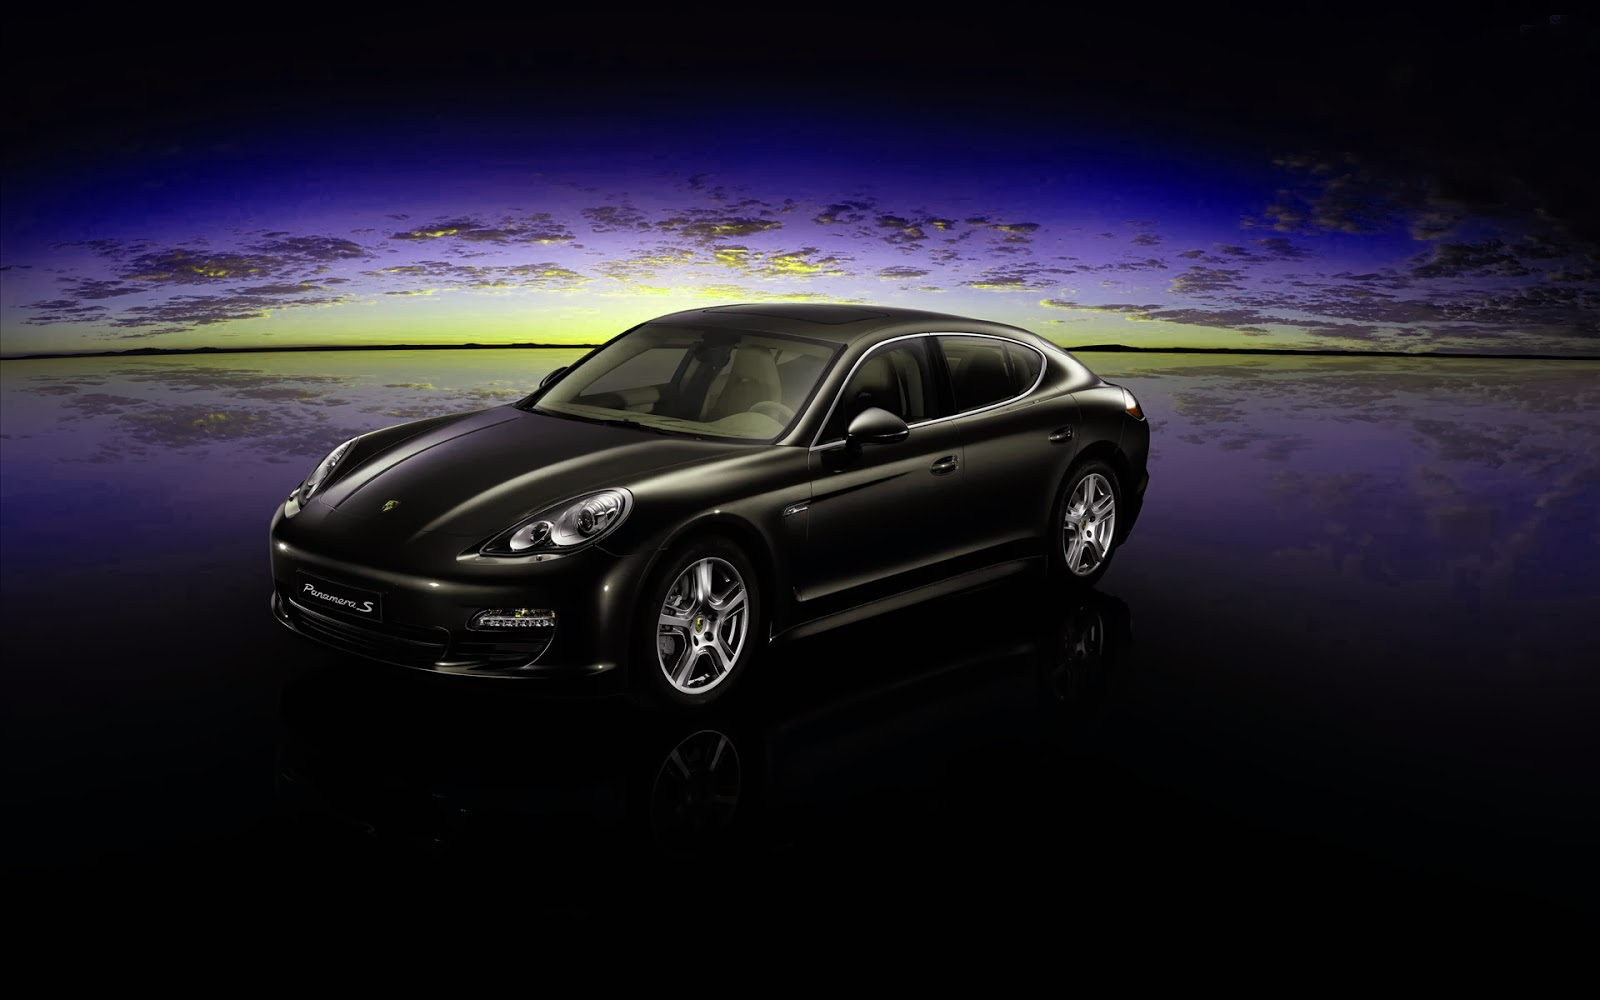 new mind blowing car wallpapers